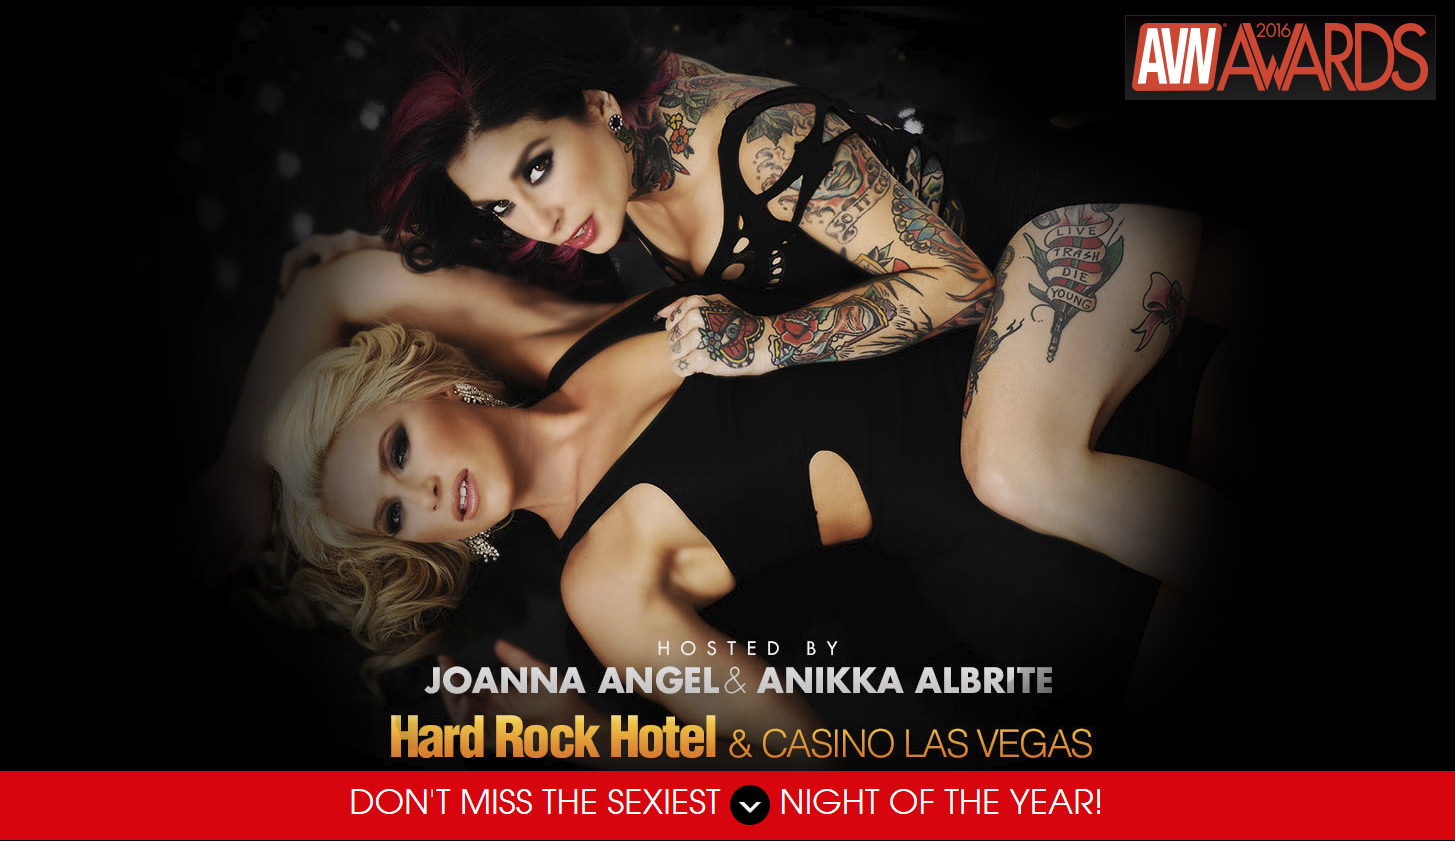 AVN Awards 2016 hosted by Joanna Angel & Anikka Albrite